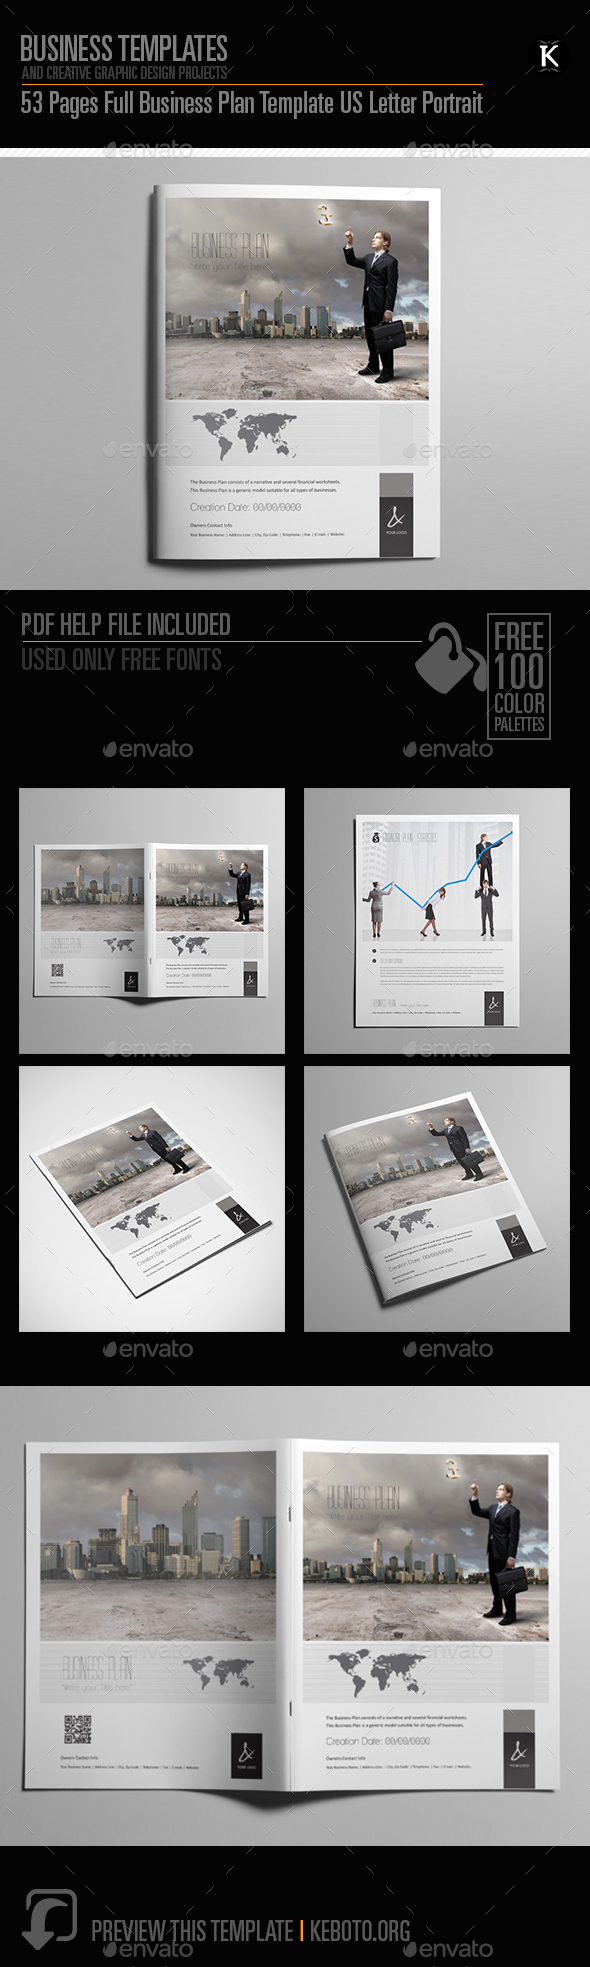 Business plan template pages graphics designs templates cheaphphosting